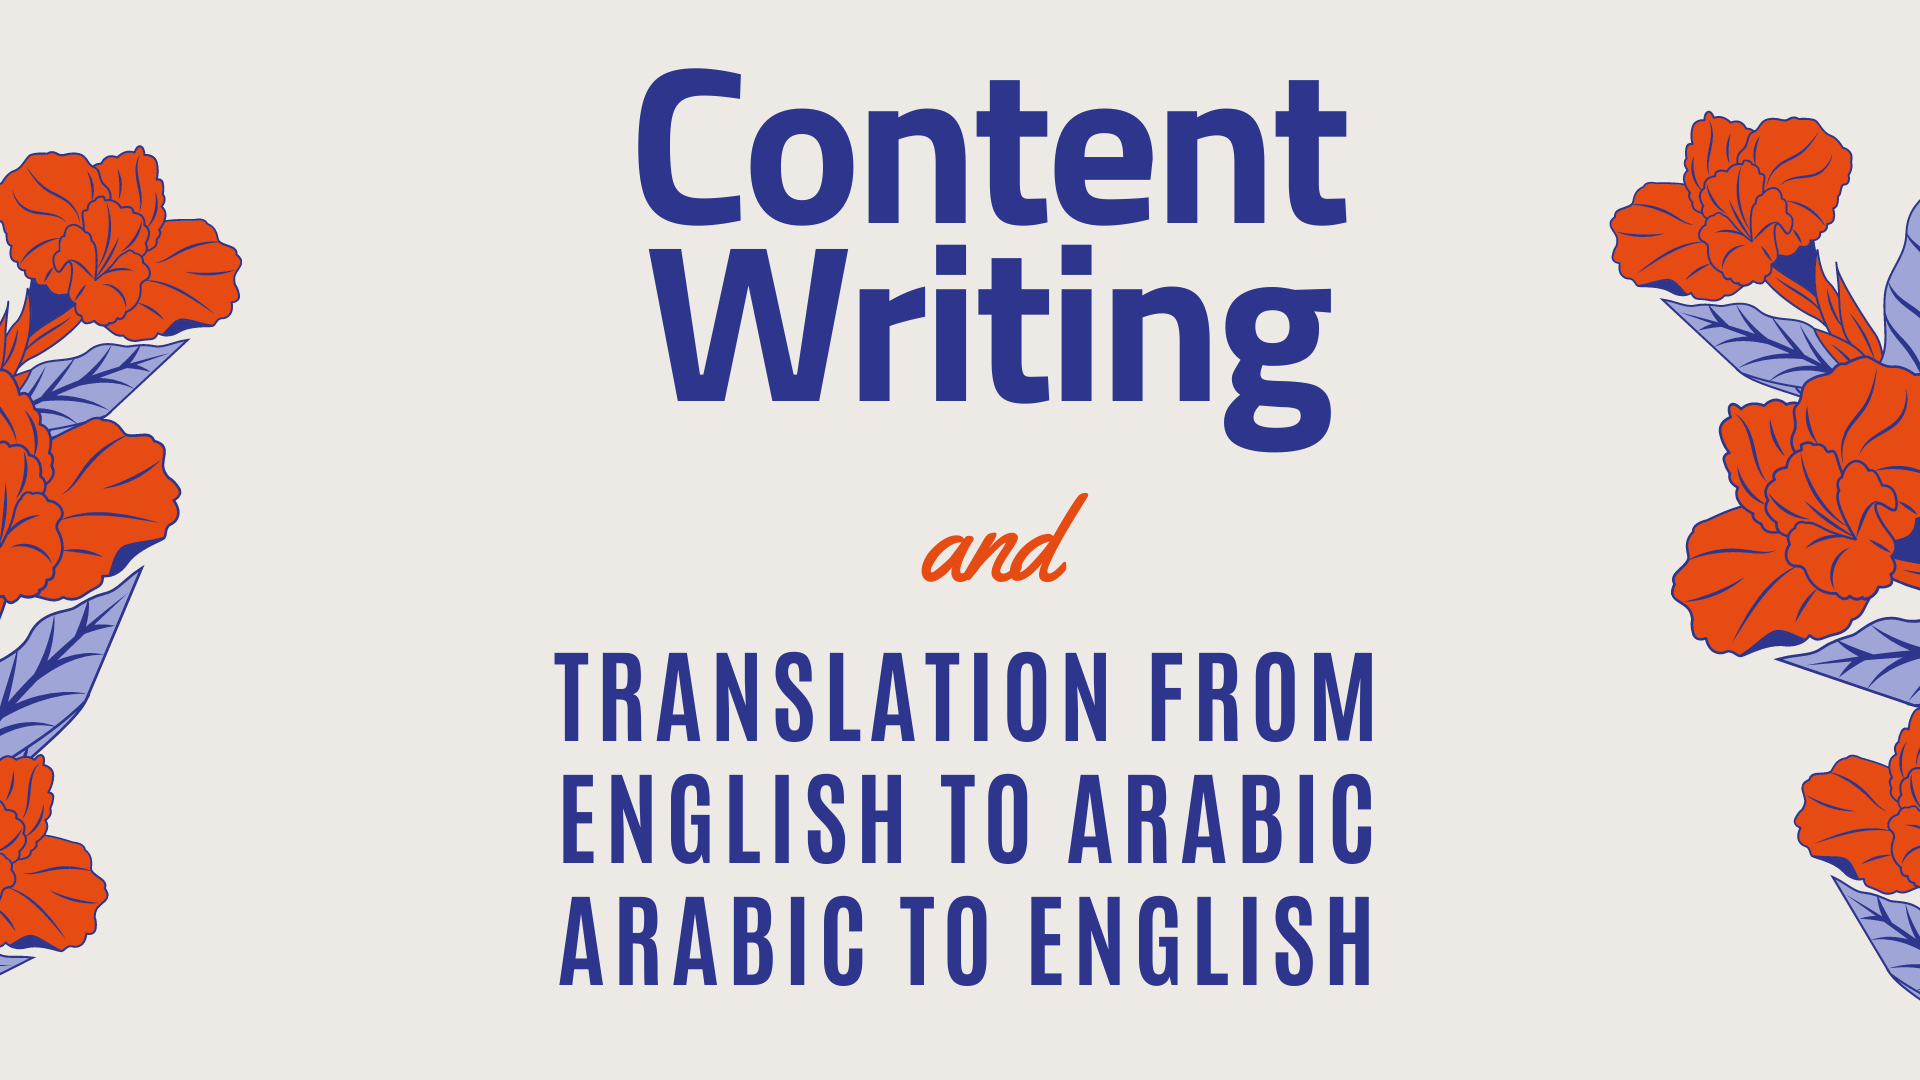 Translate English to Arabic 1000 Words In 48 Hours